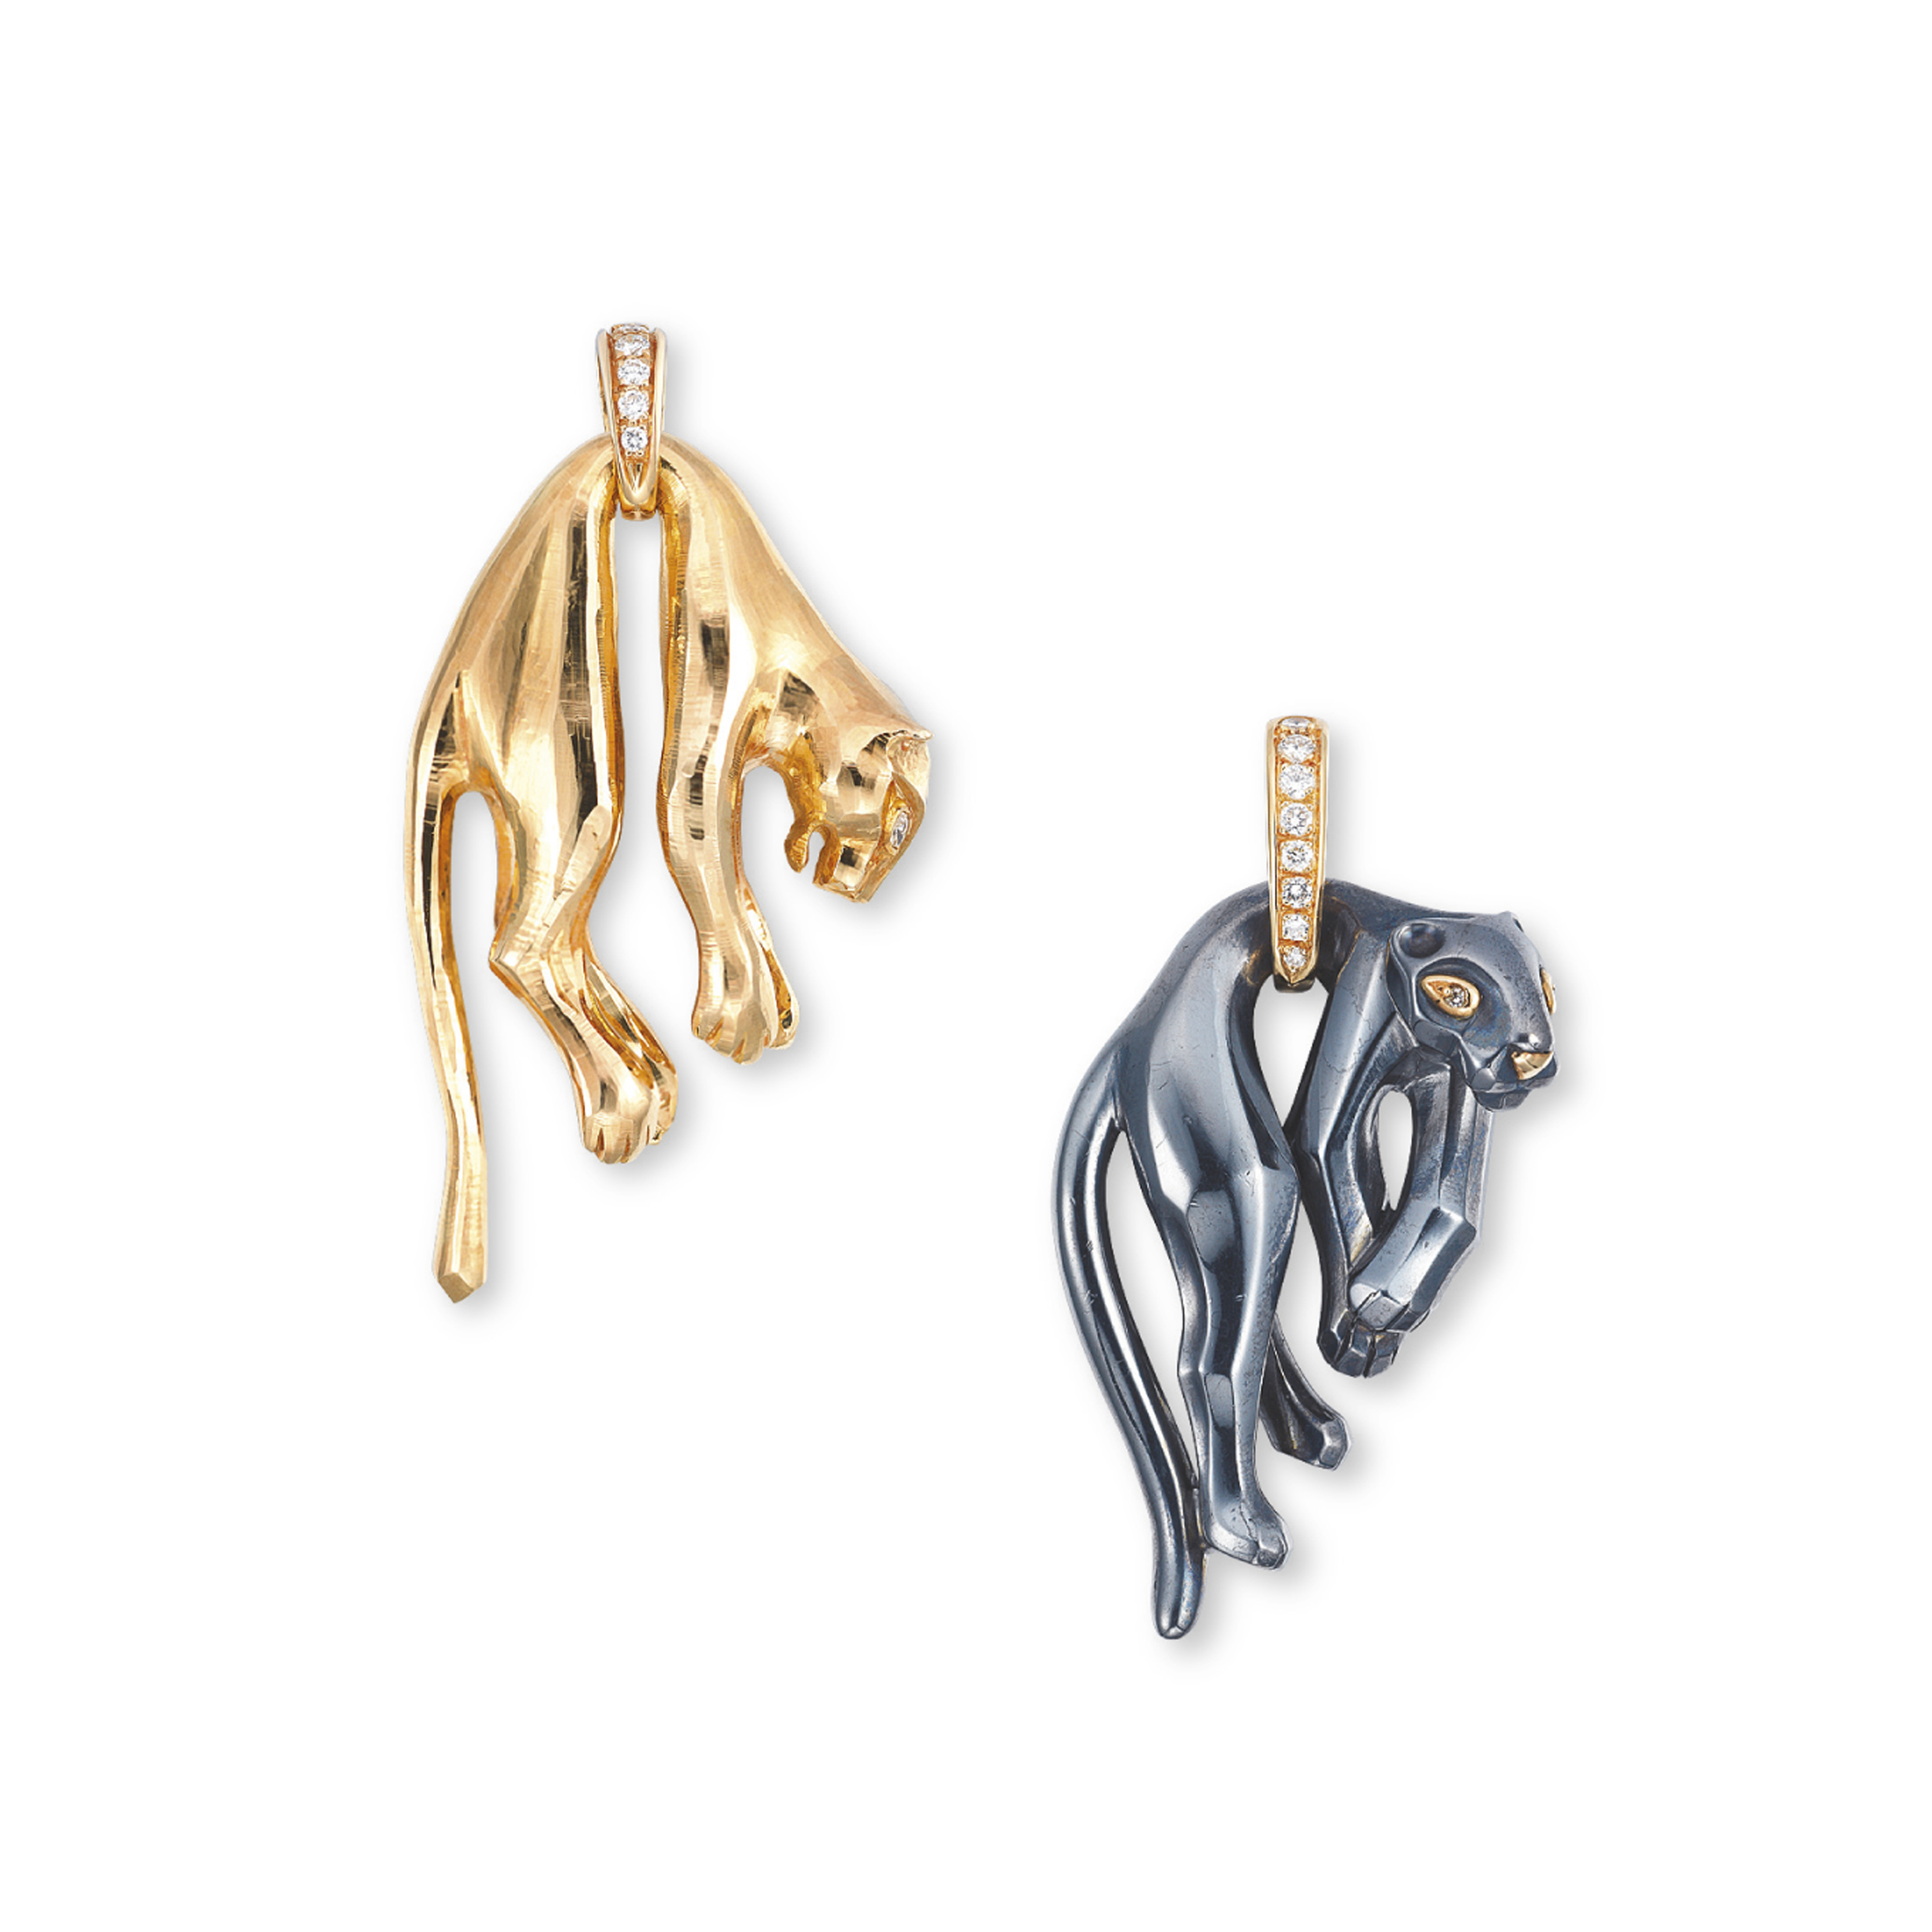 TWO HEMATITE AND DIAMOND 'PANTHÈRE' PENDANTS, BY CARTIER